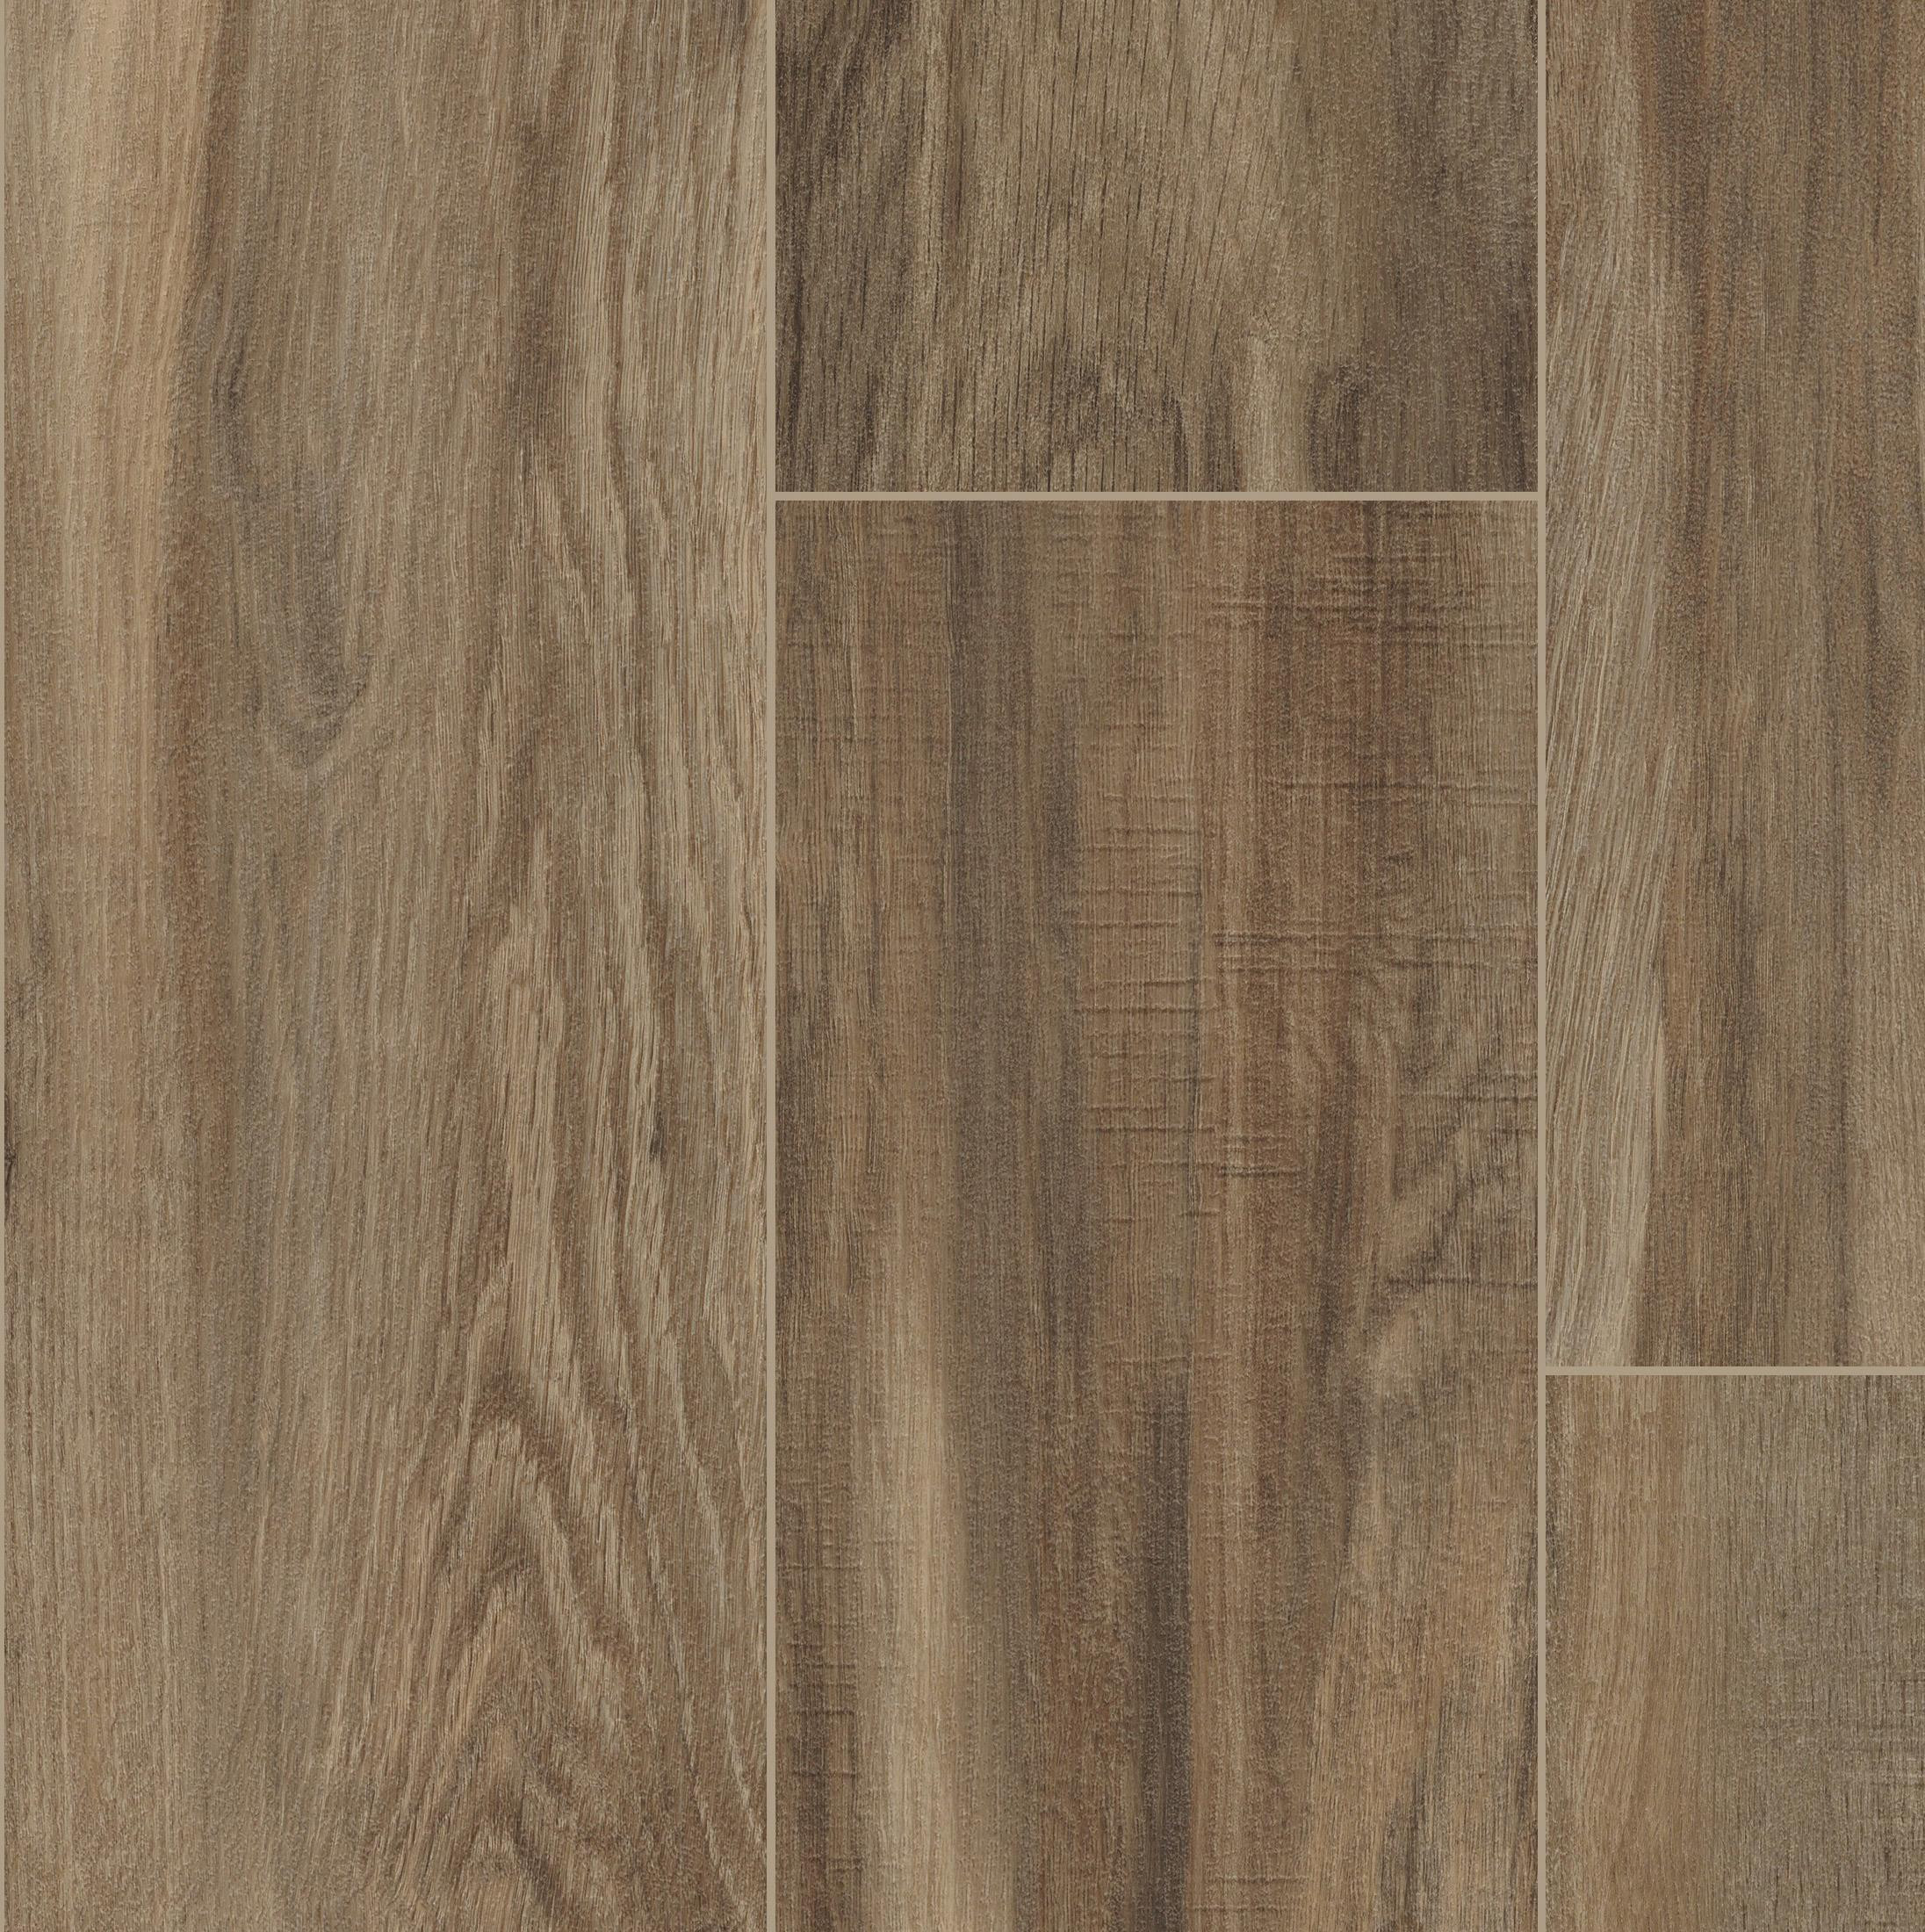 glue down engineered hardwood flooring of mohawk amber 9 wide glue down luxury vinyl plank flooring within 330 8 78 x 70 55 approved